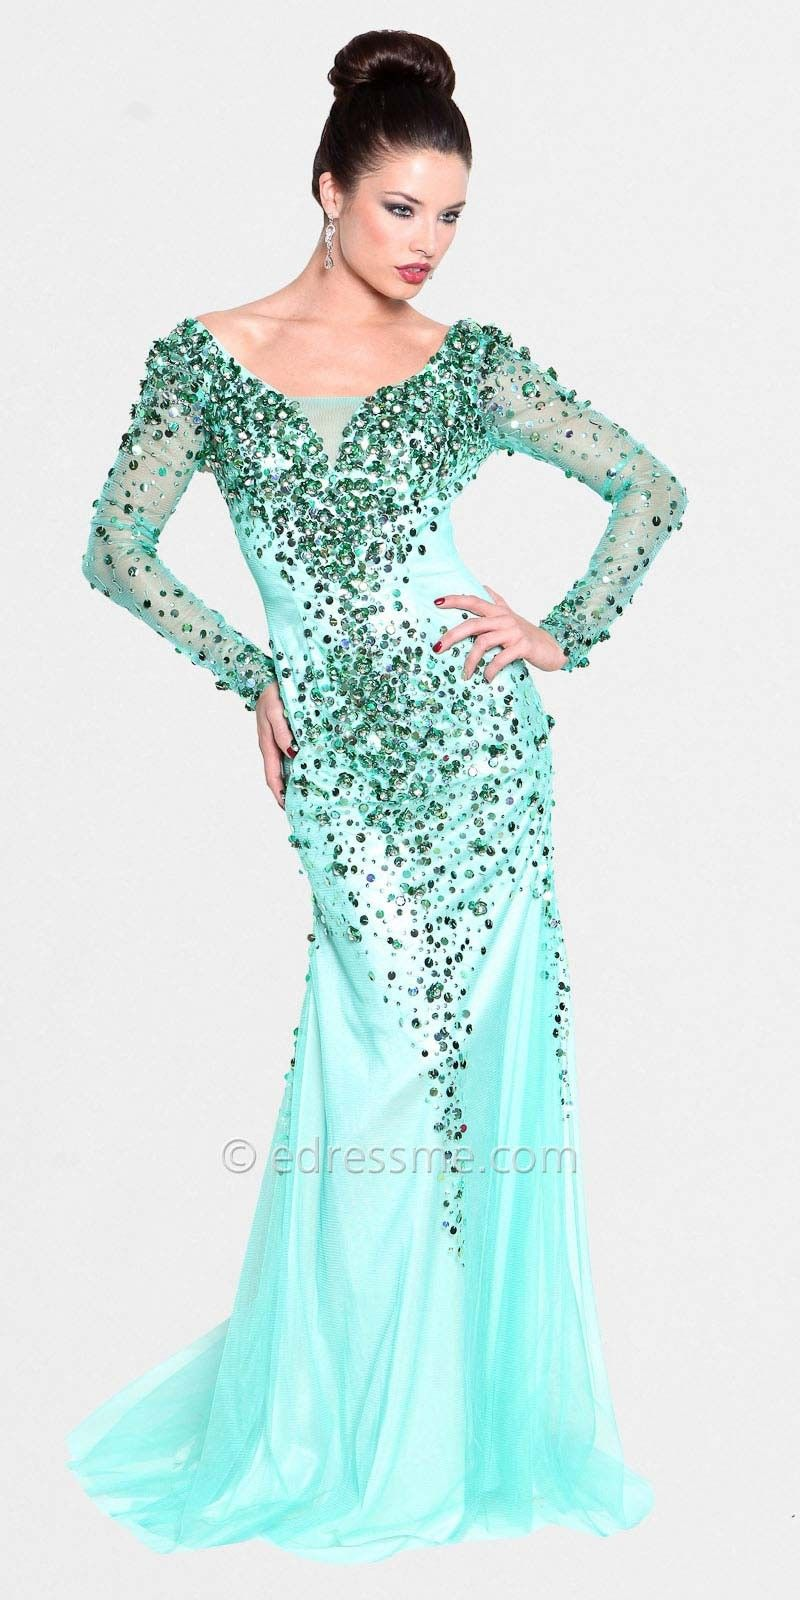 Long sleeve prom dress i wan this in red and gold fashion